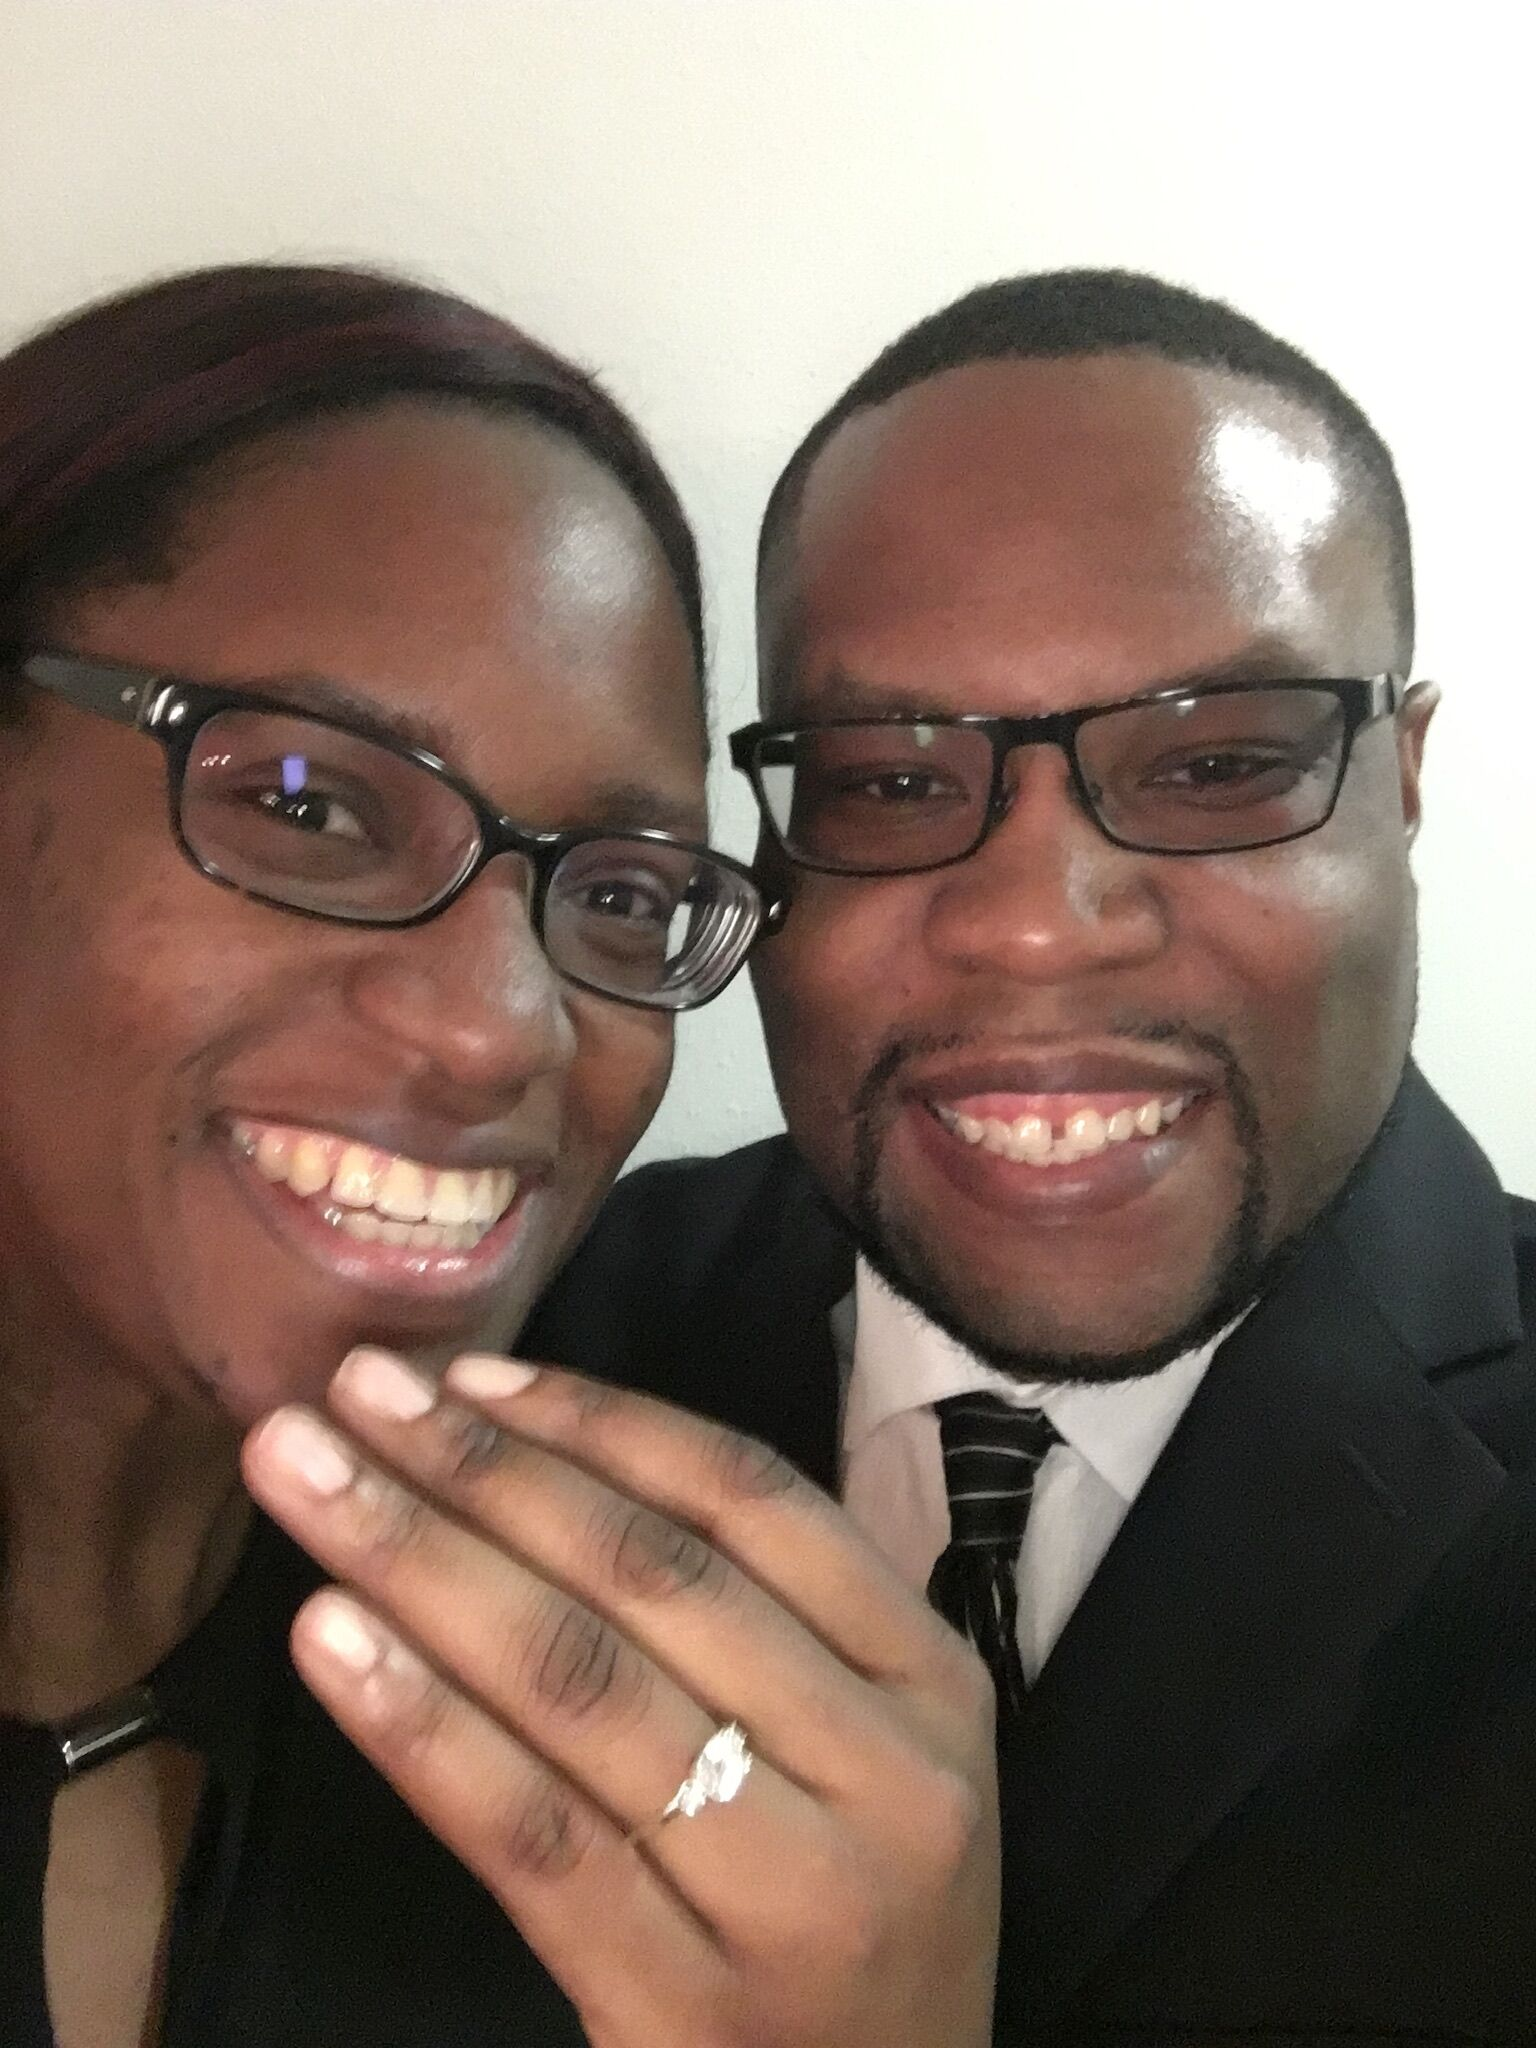 Image 1 of Janet and Nathaniel